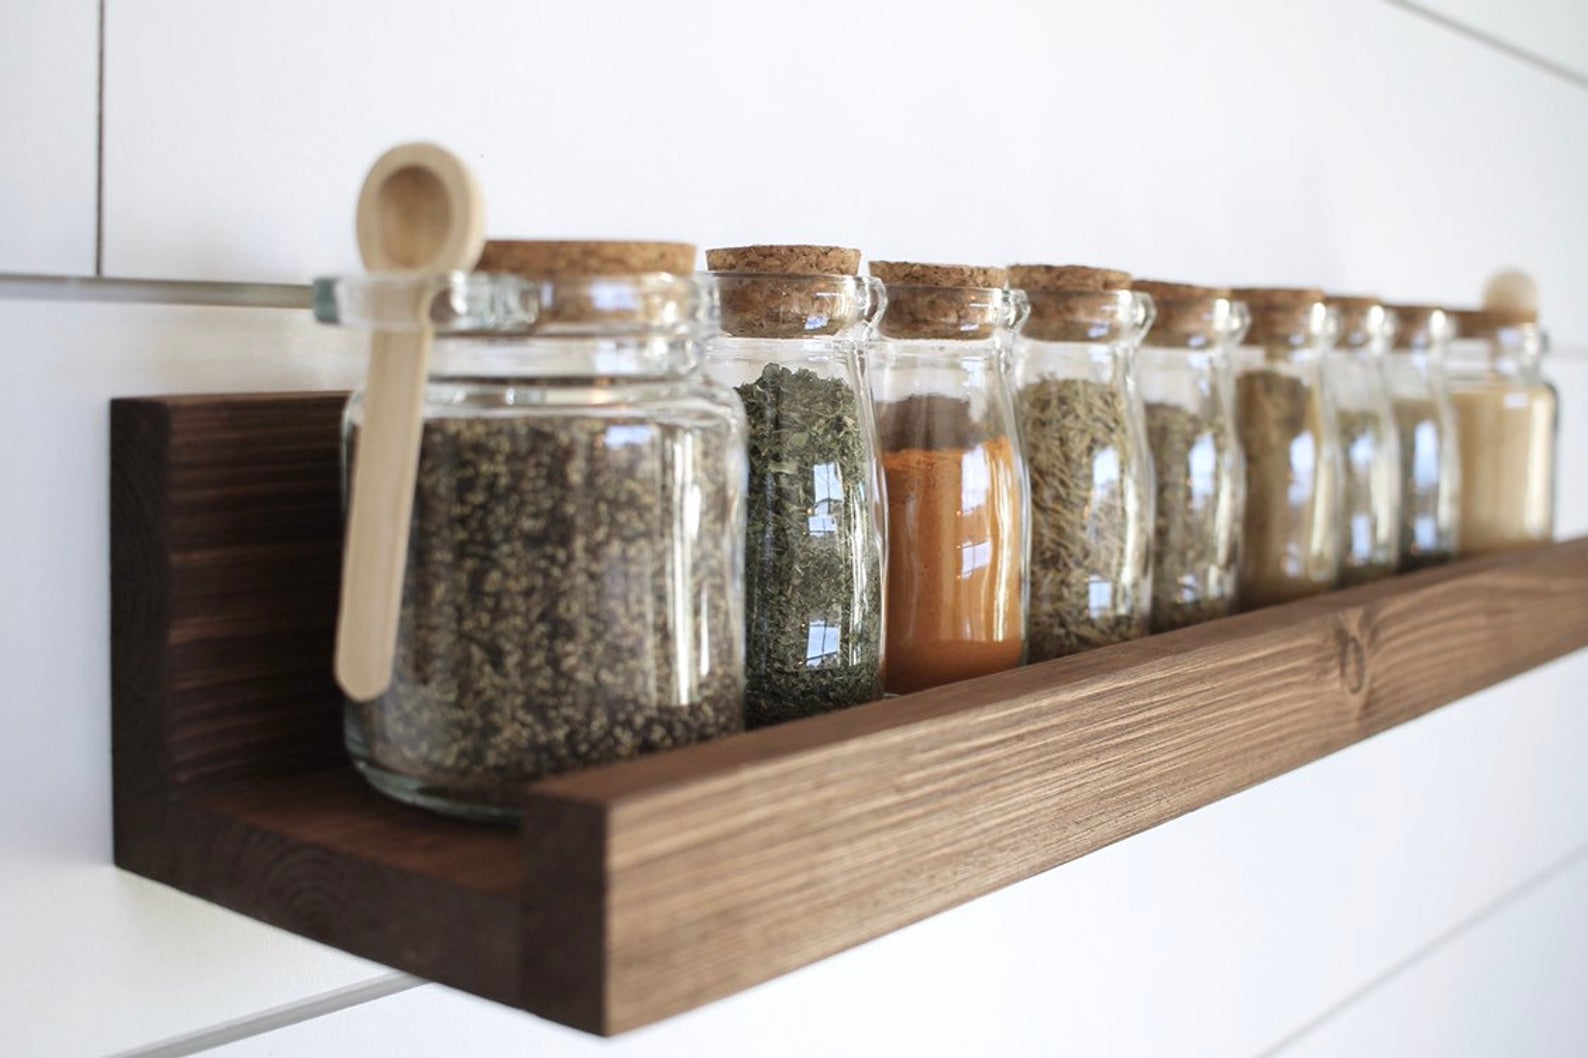 wooden shelf with bottles of spices on it